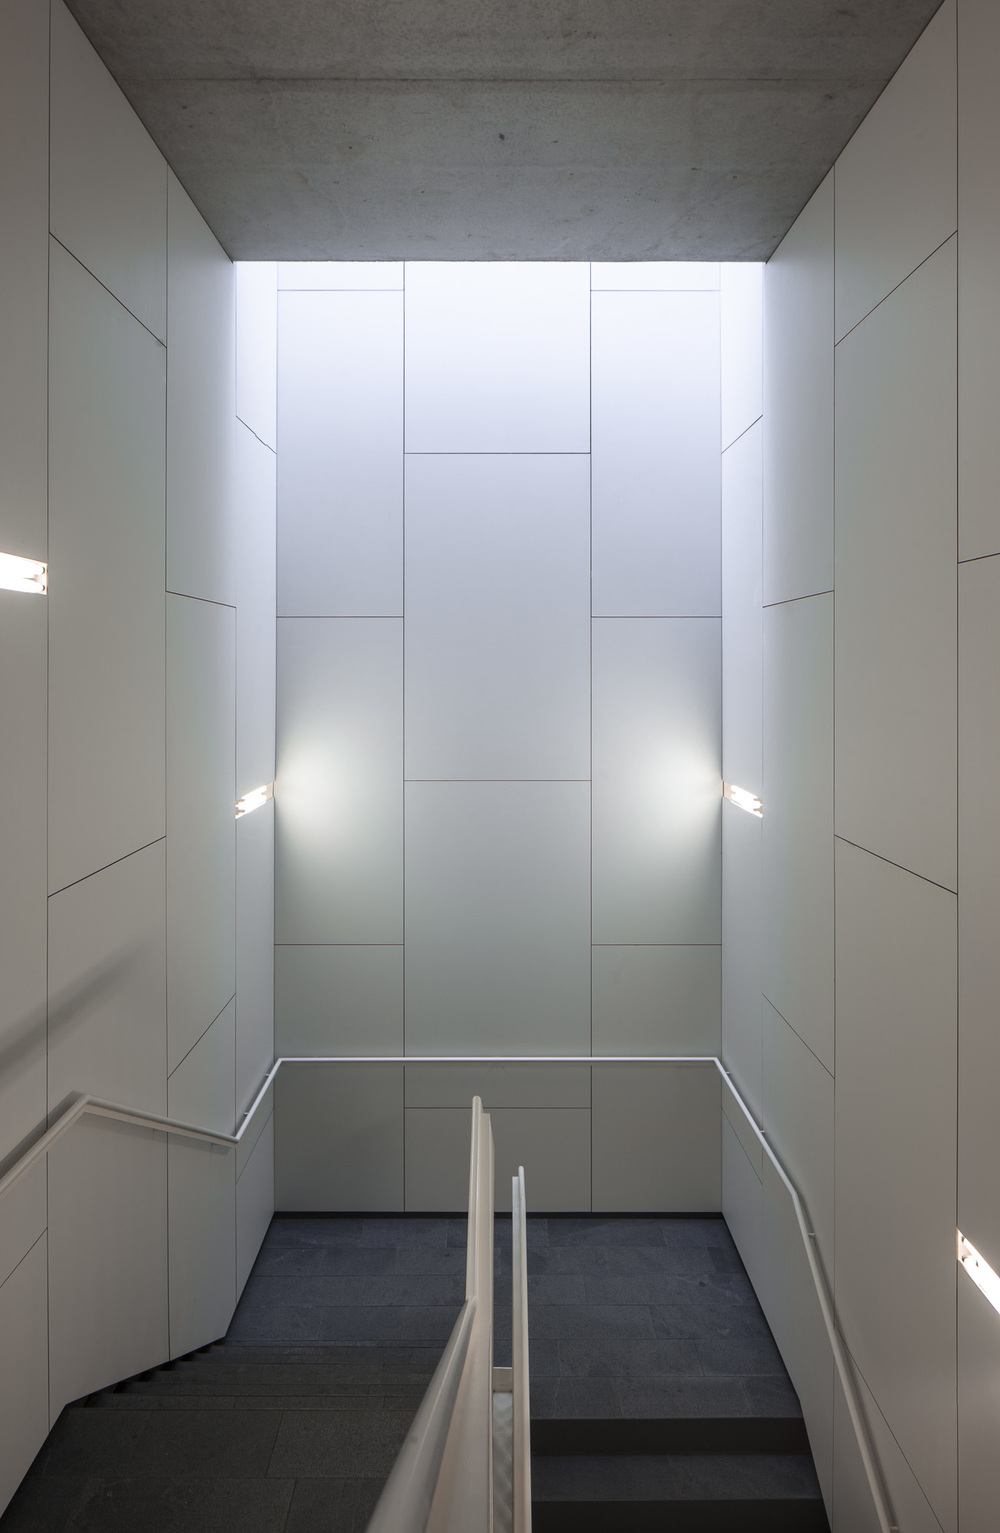 Stairs down to hospitalization areas, with skylights.